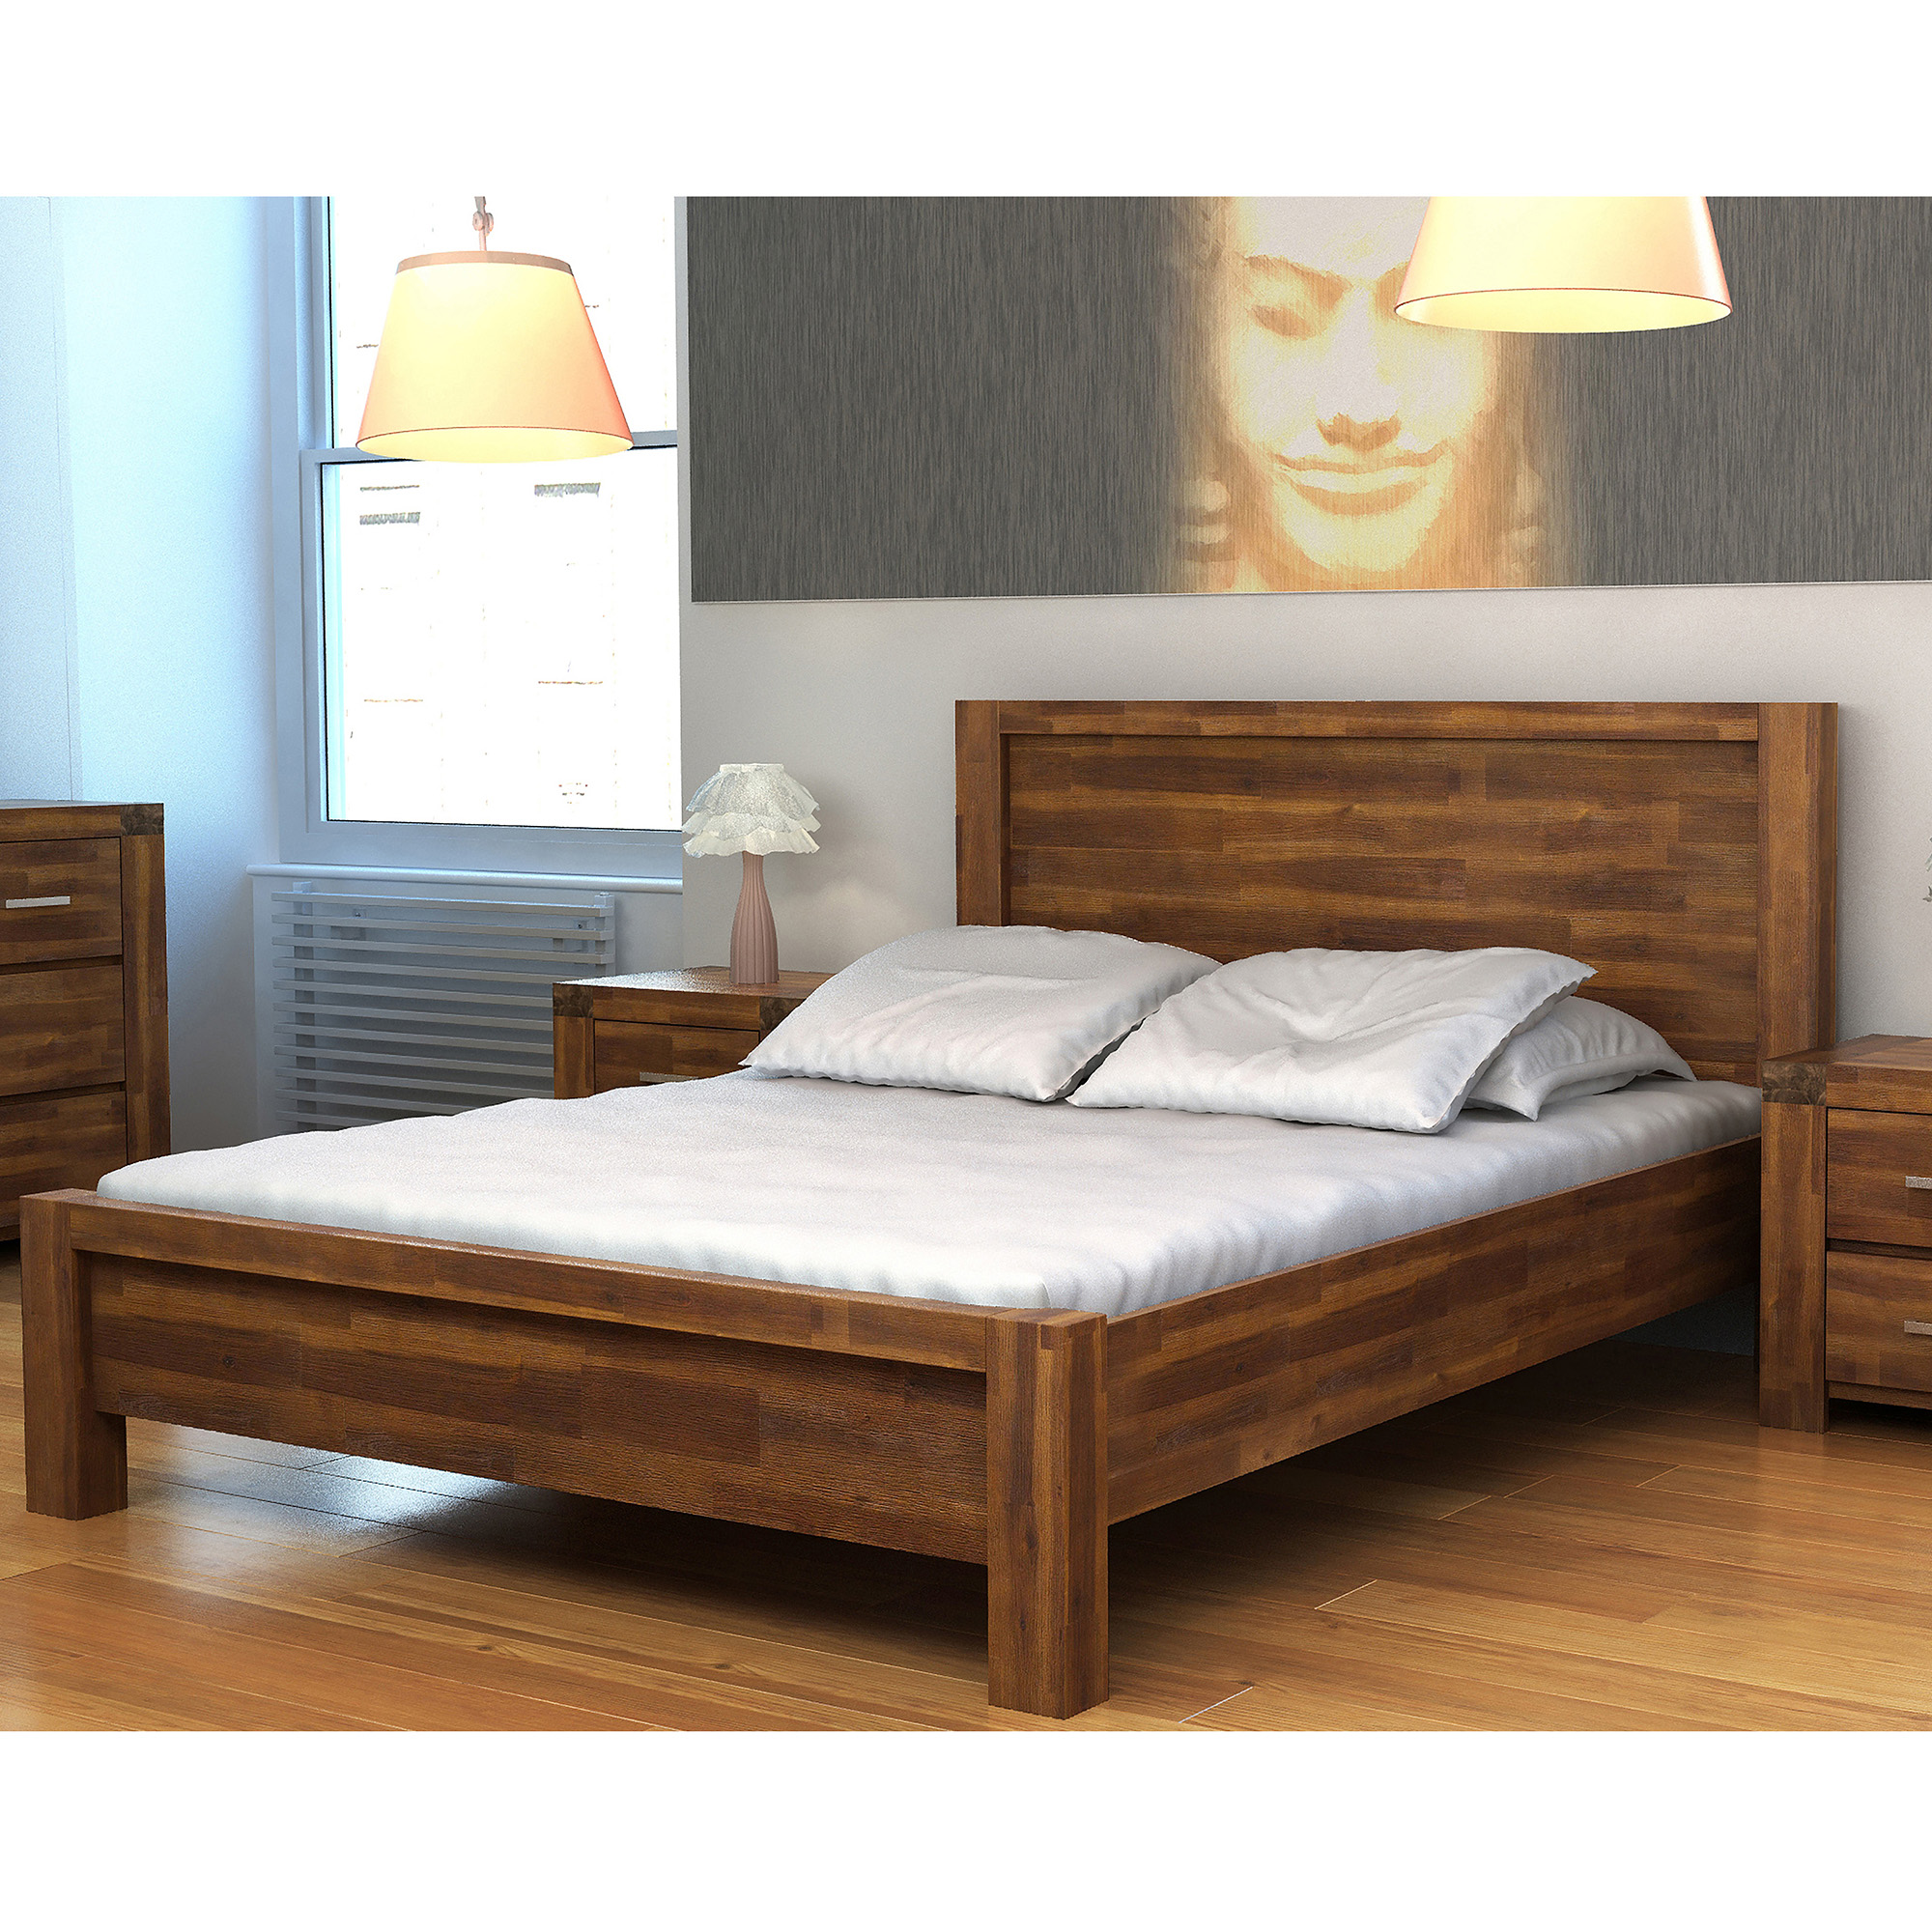 Wood Bed Headboards ~ Your guide to buying the perfect bed worldwide